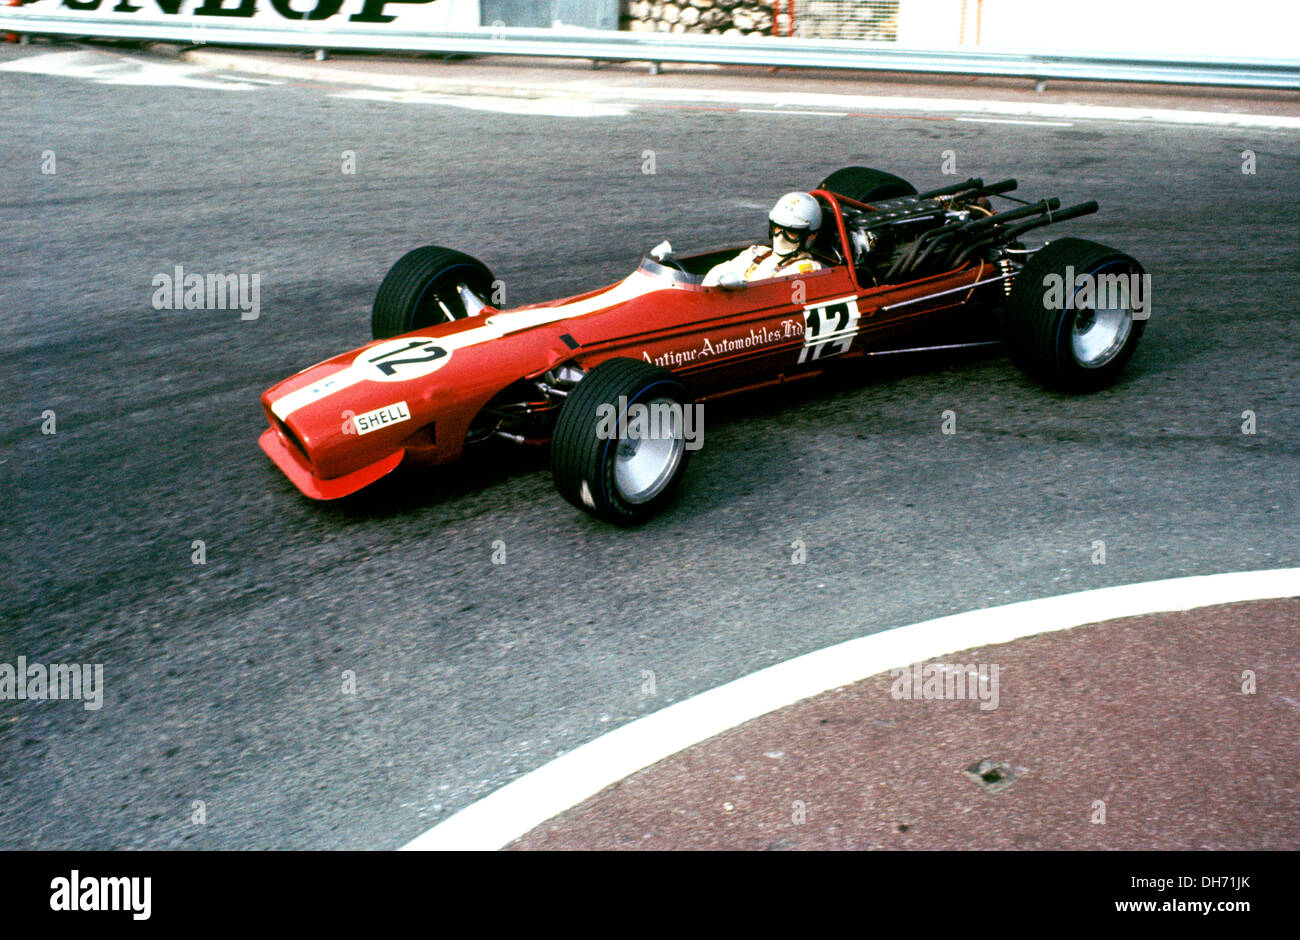 Vic elford in the cooper maserati t686b finished 7th monaco gp 18 may 1969